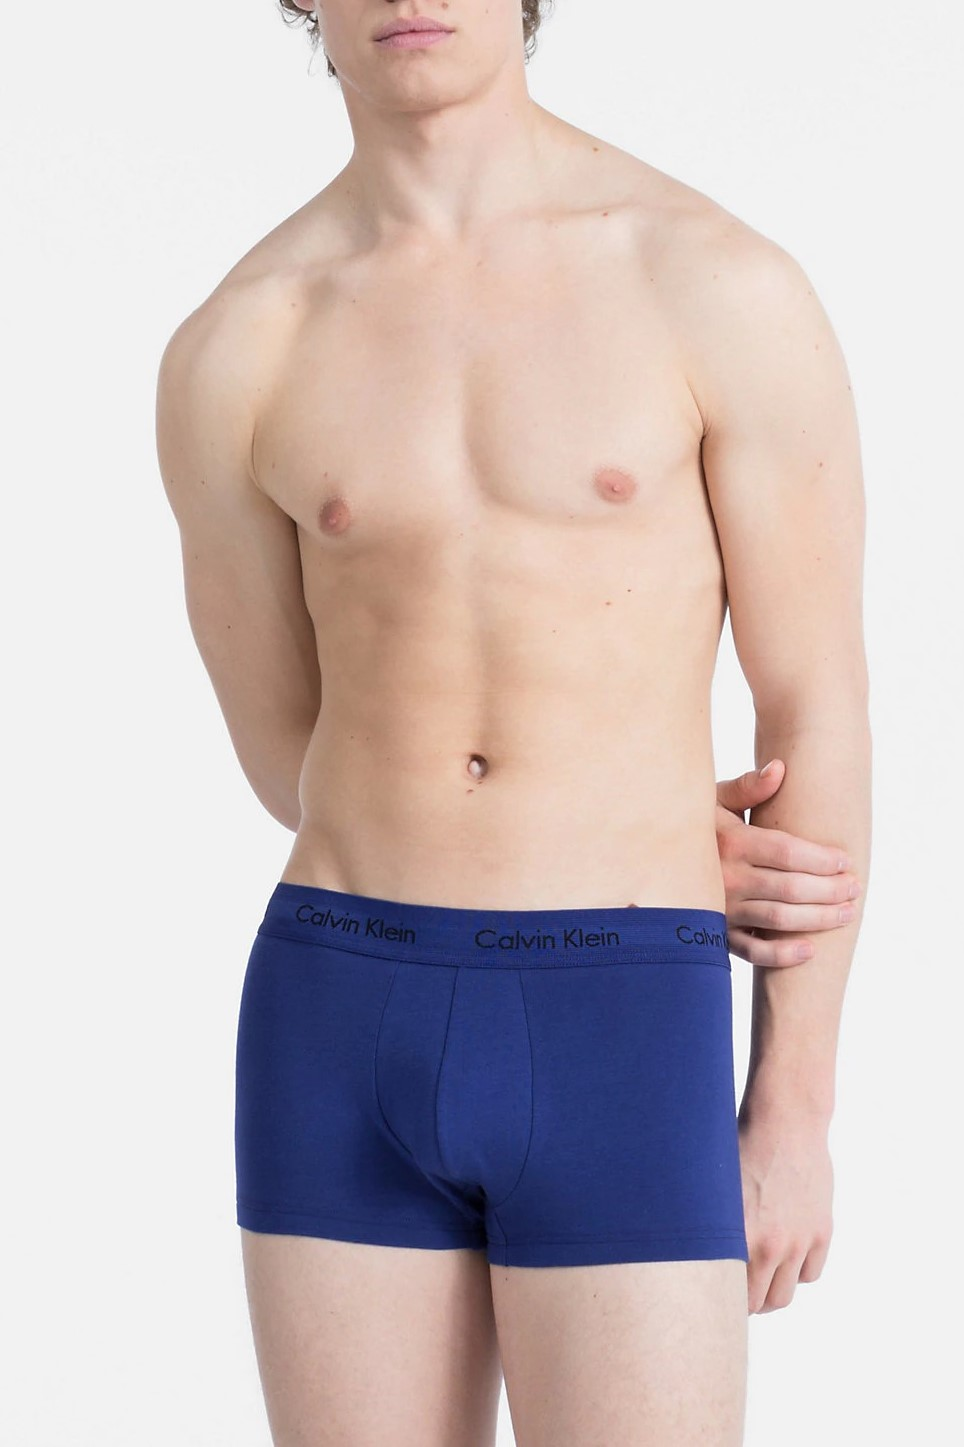 Calvin Klein 3 pack boxeri colorati de bărbați Cotton Stretch